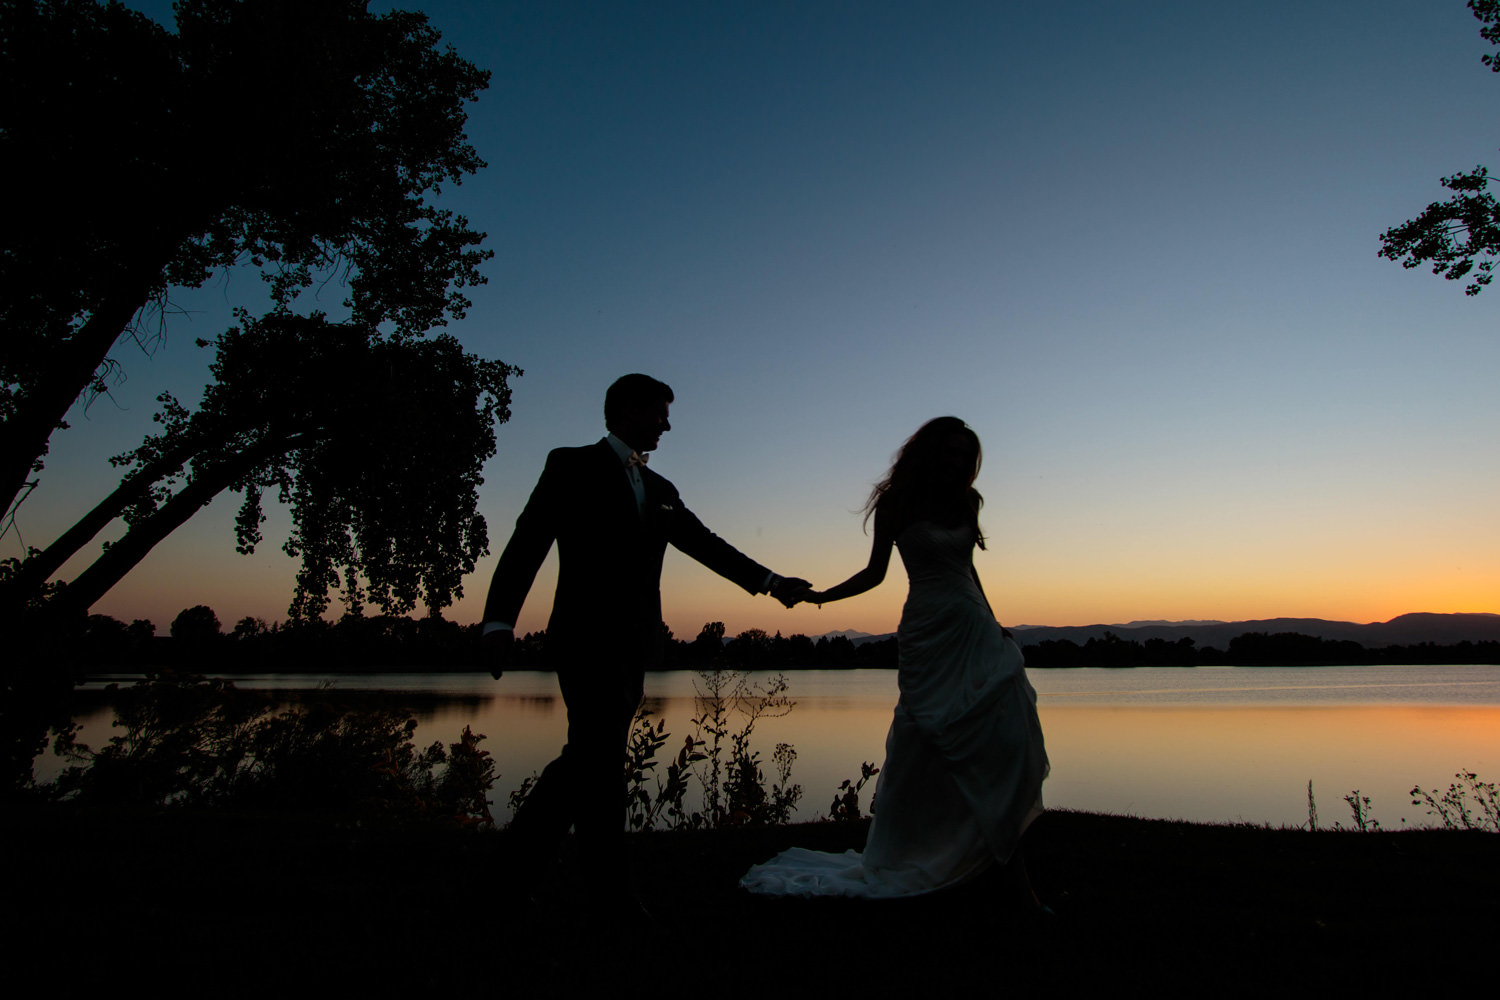 fort-collins-country-club-wedding-photographer-tomKphoto028.jpg